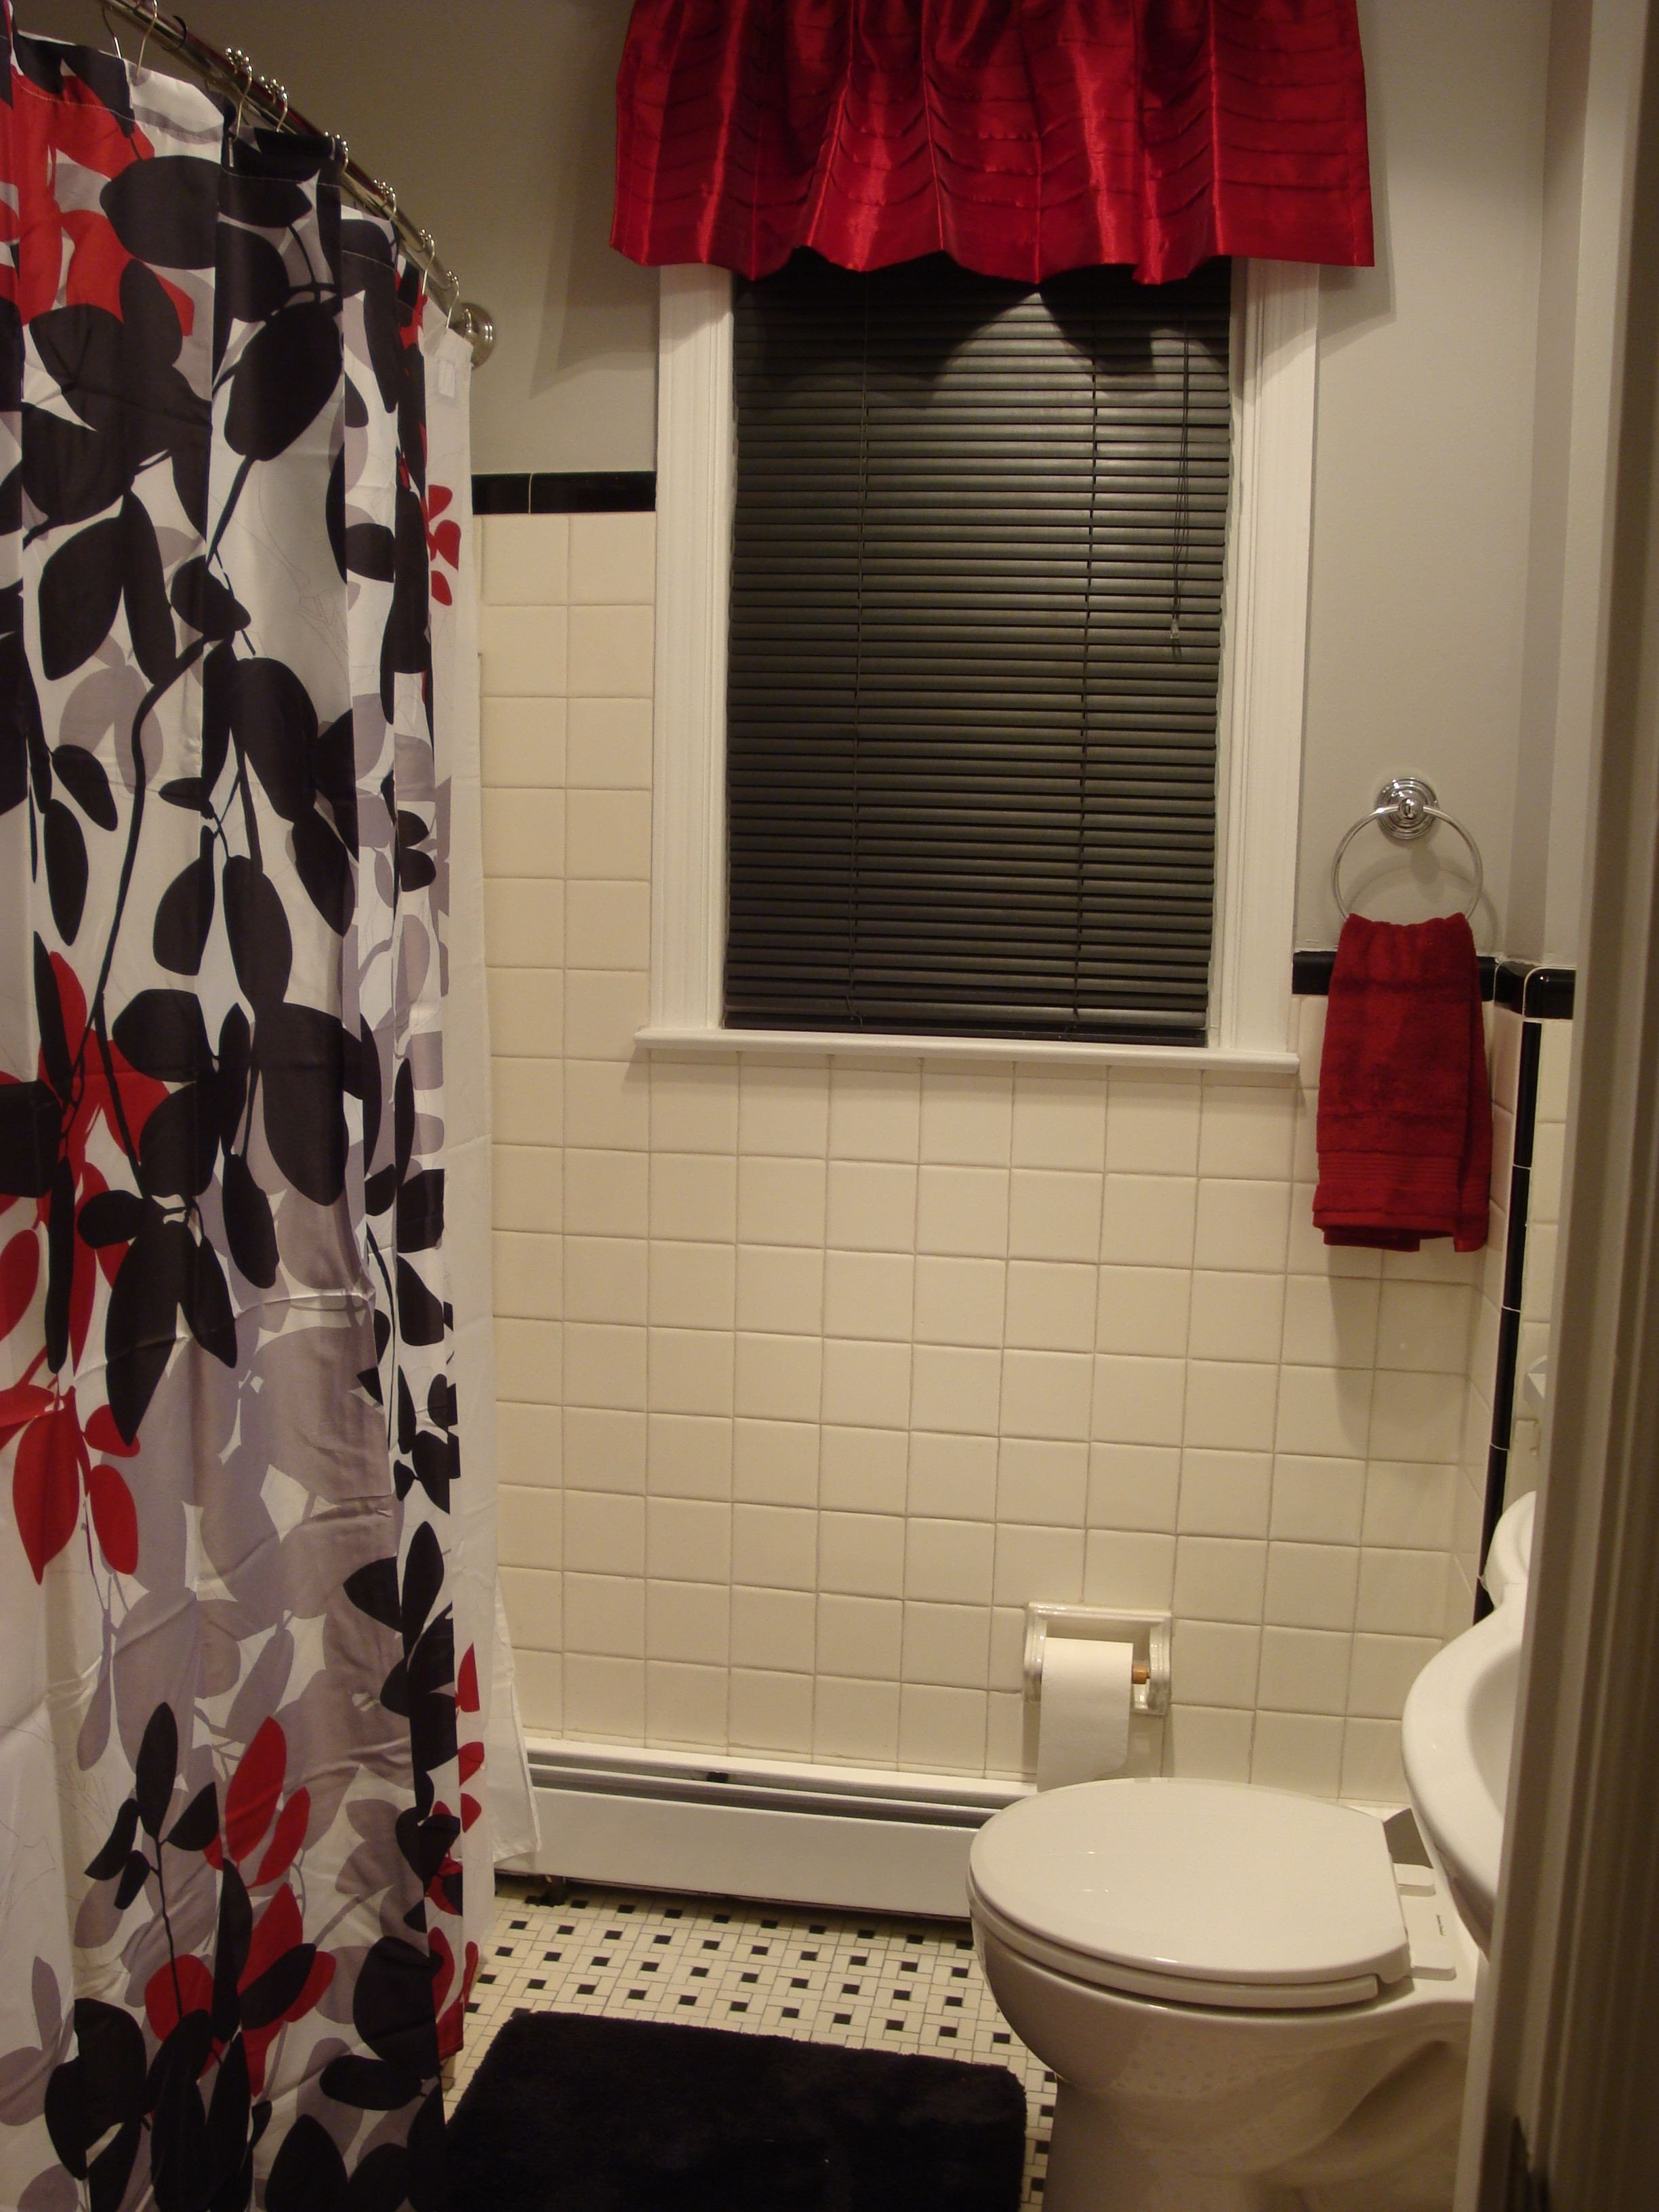 Red and White Bathroom Decor Luxury Black Red Gray & White Bathroom I Love It Bathroom